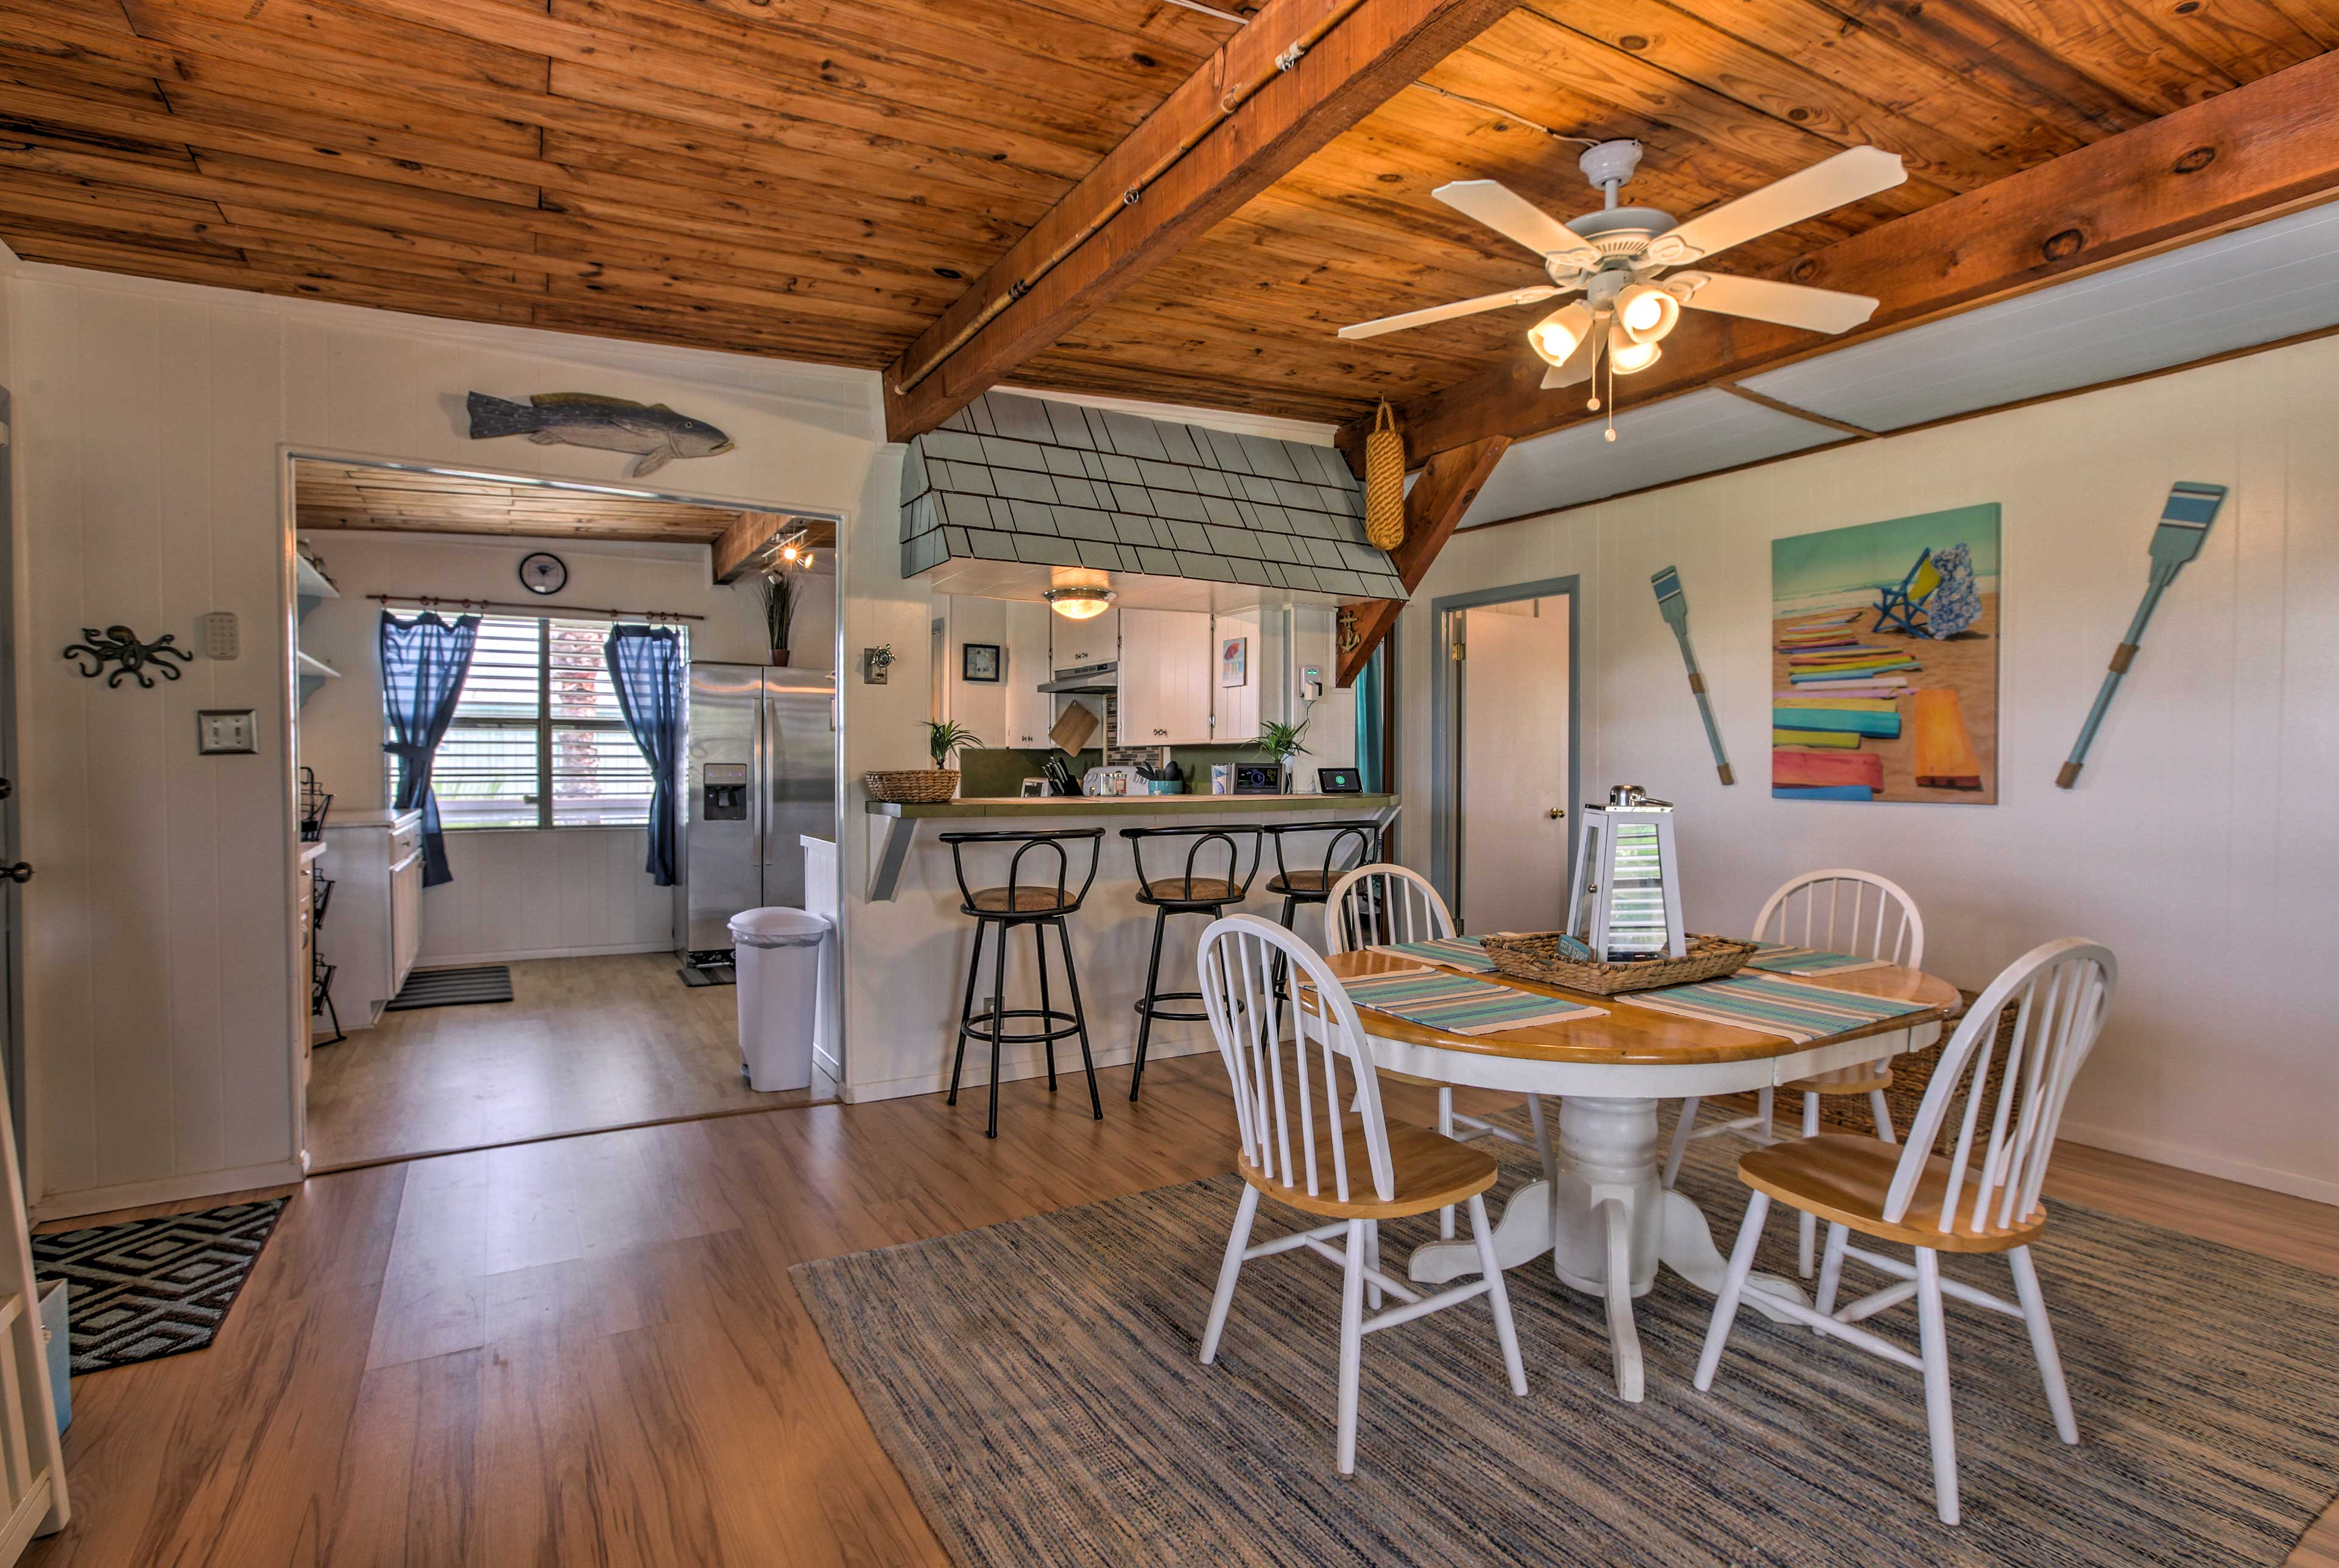 This home is highlighted by rustic furnishings and island decor.